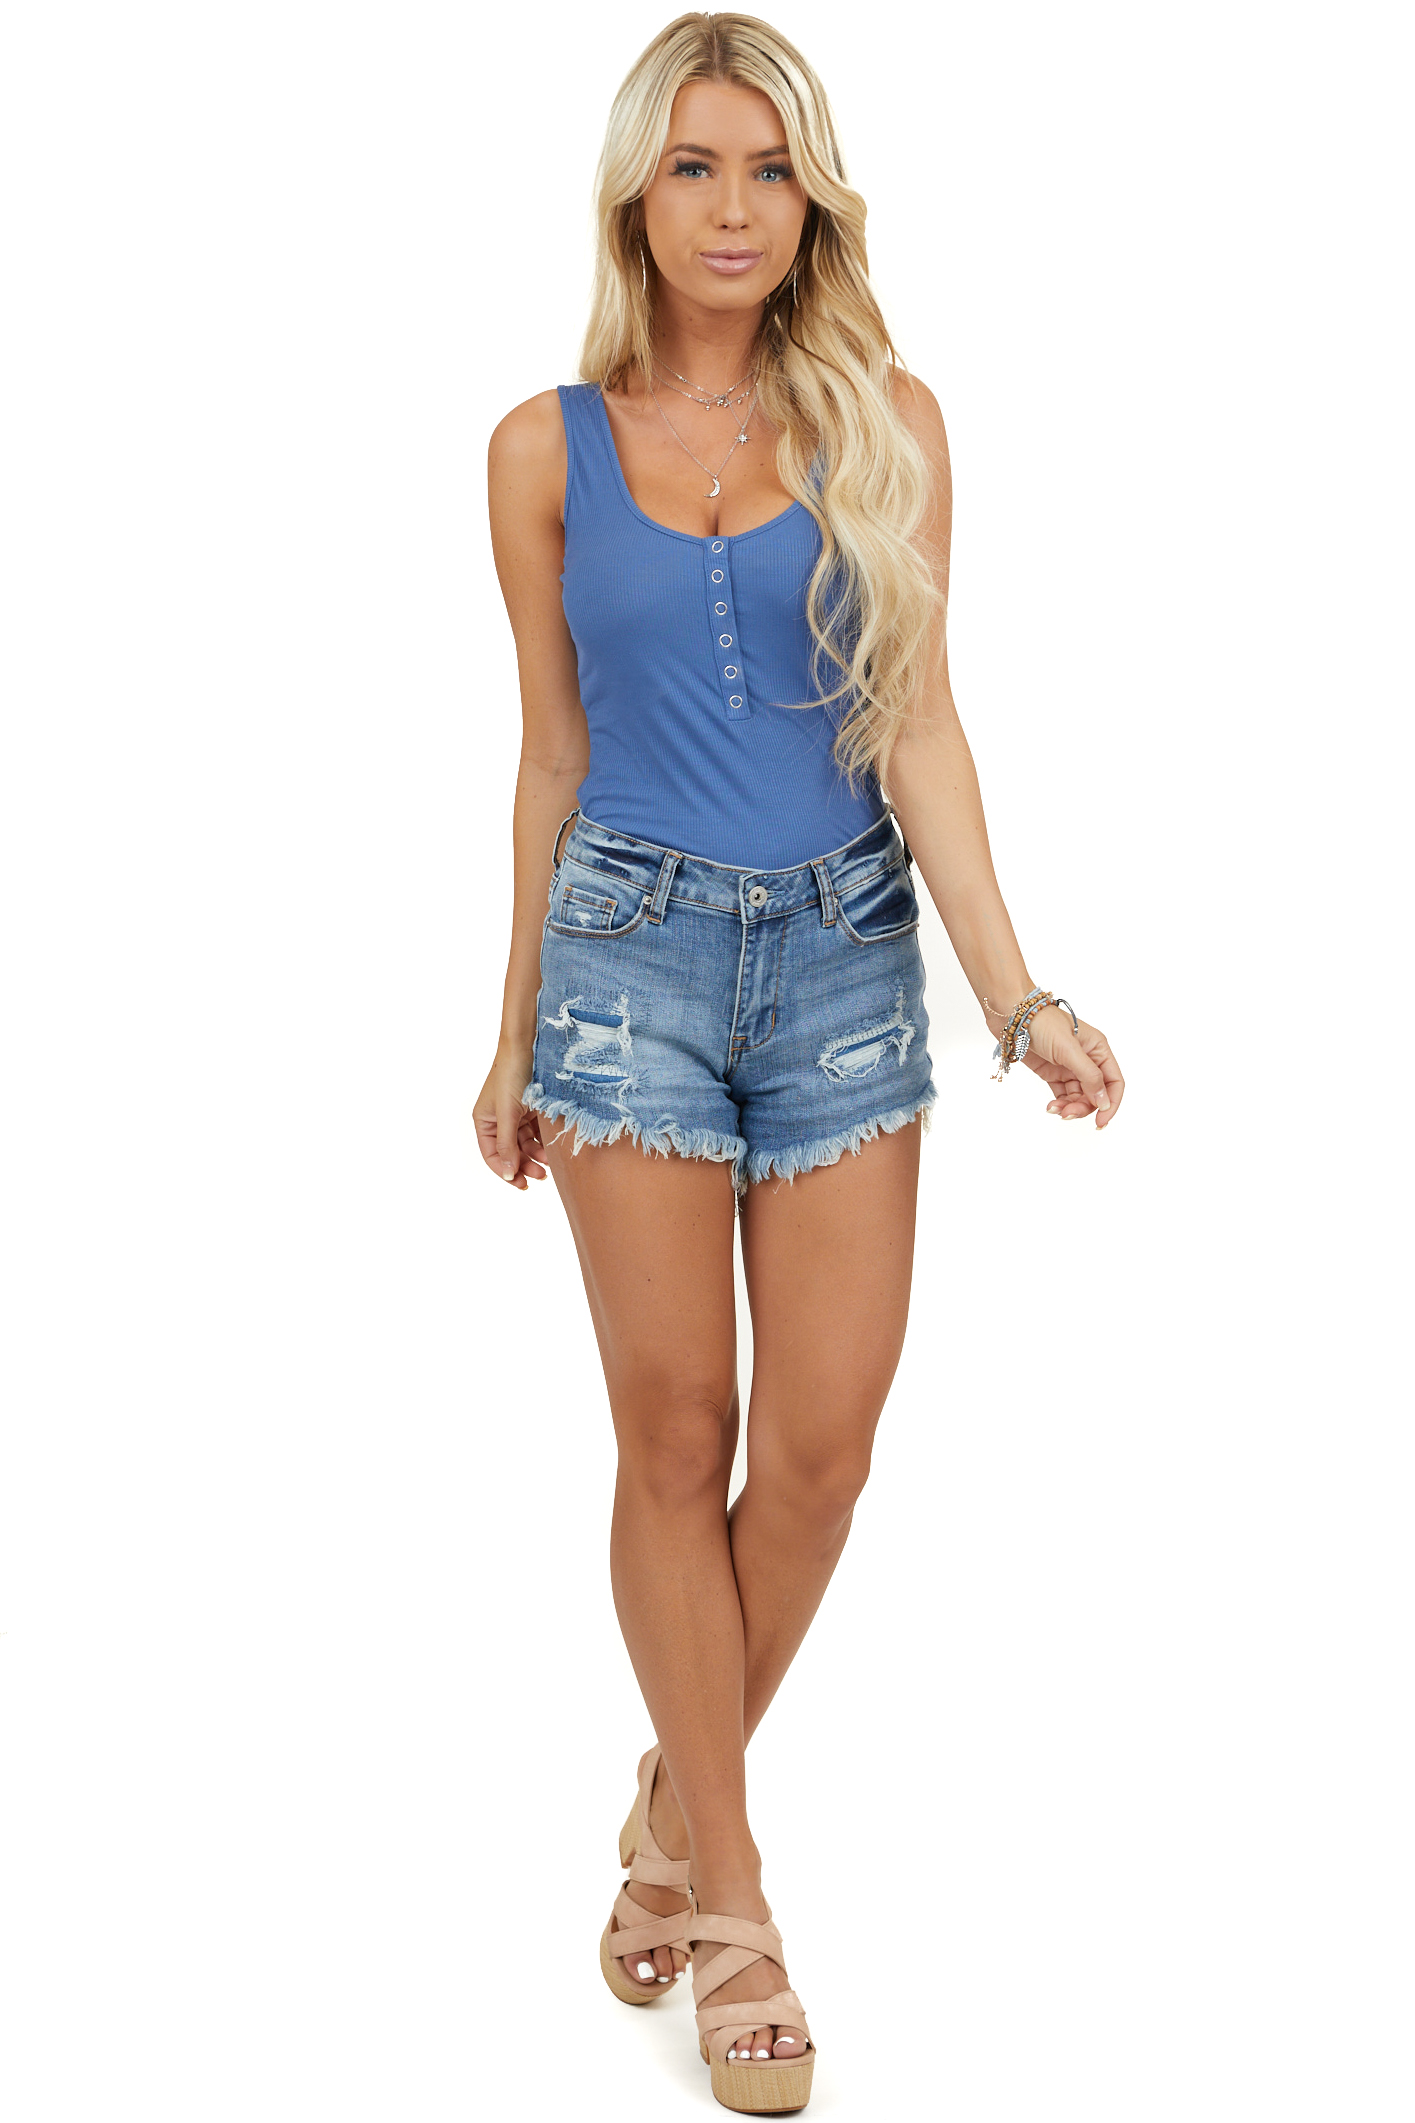 Cornflower Blue Ribbed Bodysuit with Button Details